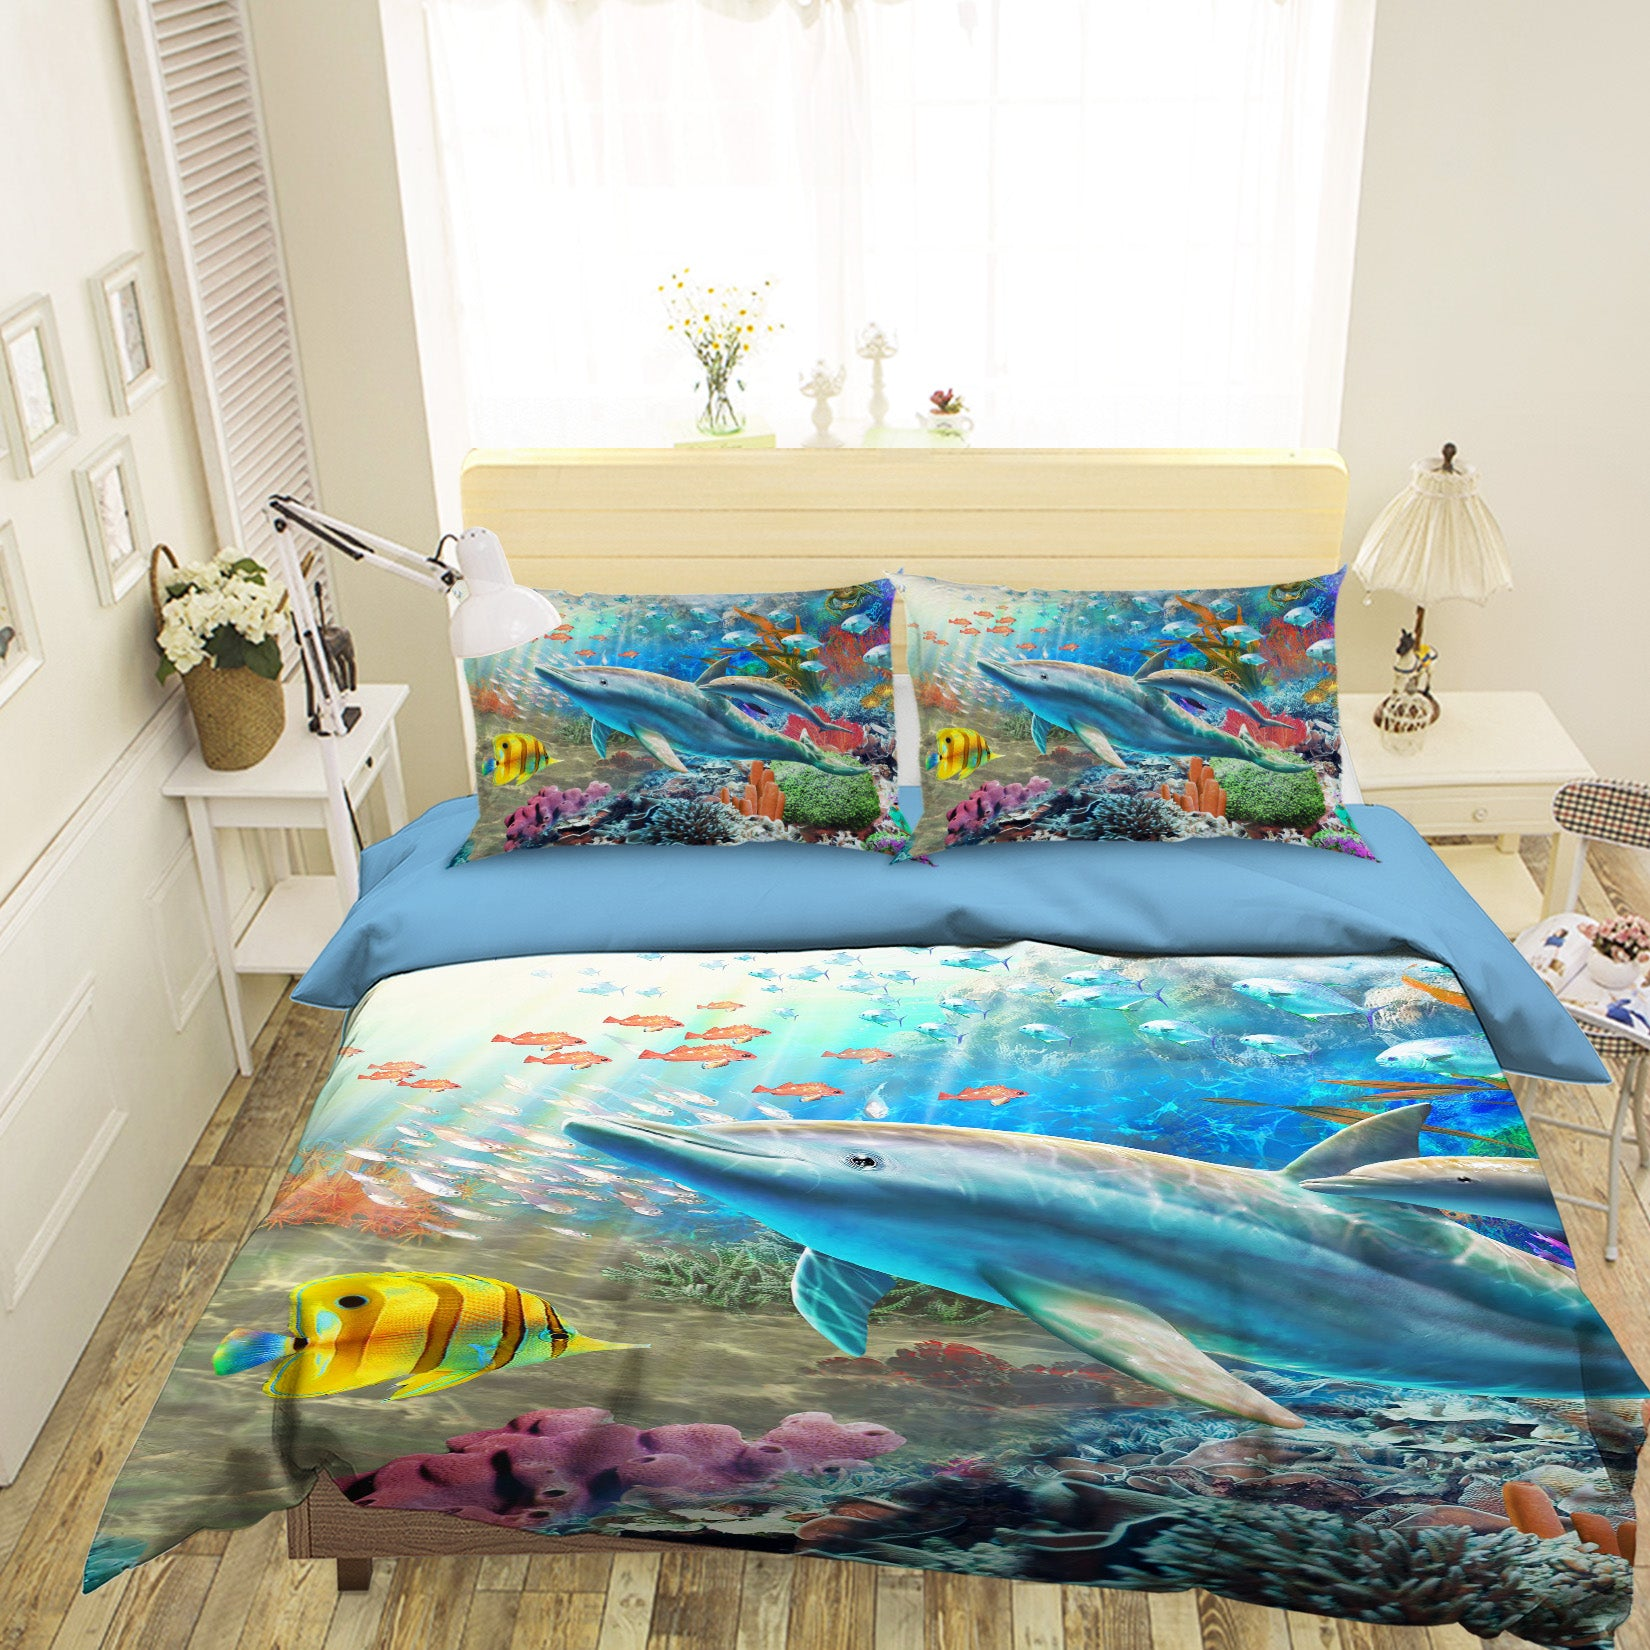 3D Happy Dolphin 2036 Adrian Chesterman Bedding Bed Pillowcases Quilt